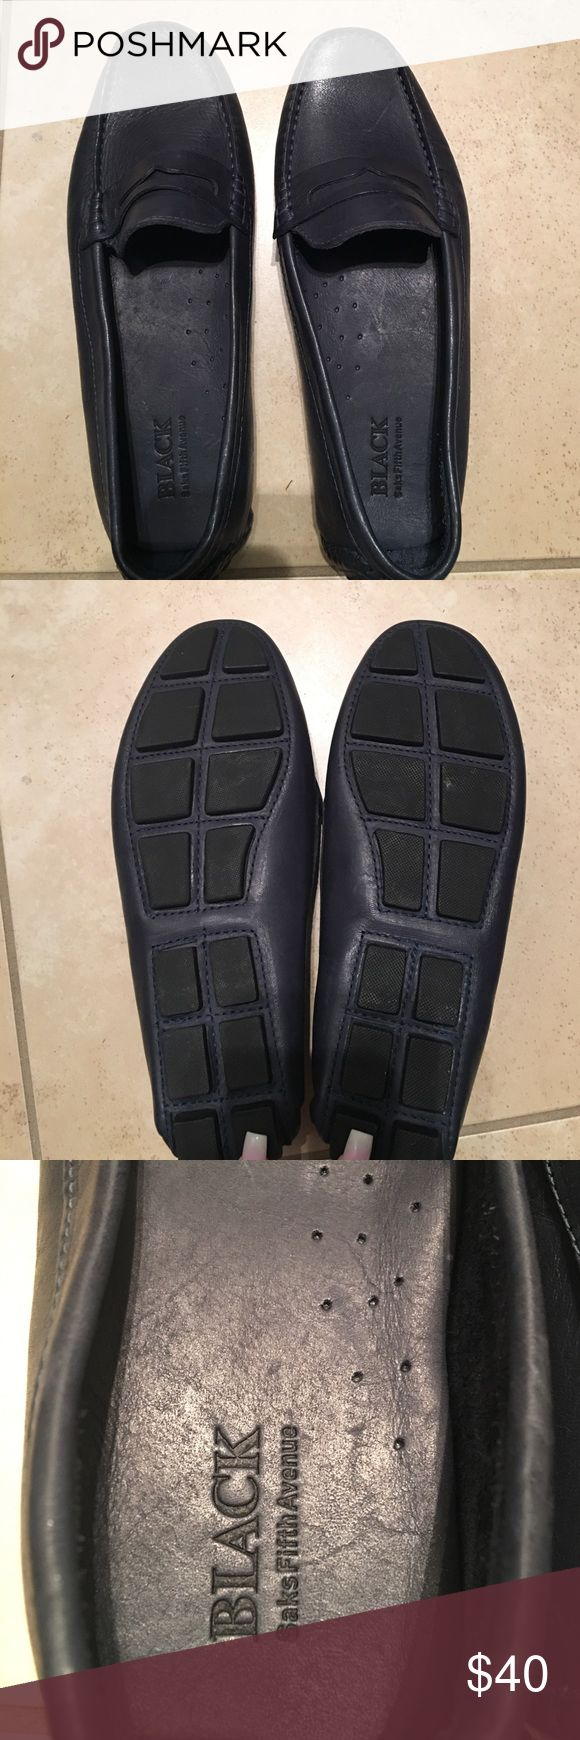 Ladies in navy blue loafers Ladies navy blue leather loafers. Black brand from Saks Fifth Avenue. Maybe worn once, like new condition. Black Saks Fifth Ave Shoes Flats & Loafers